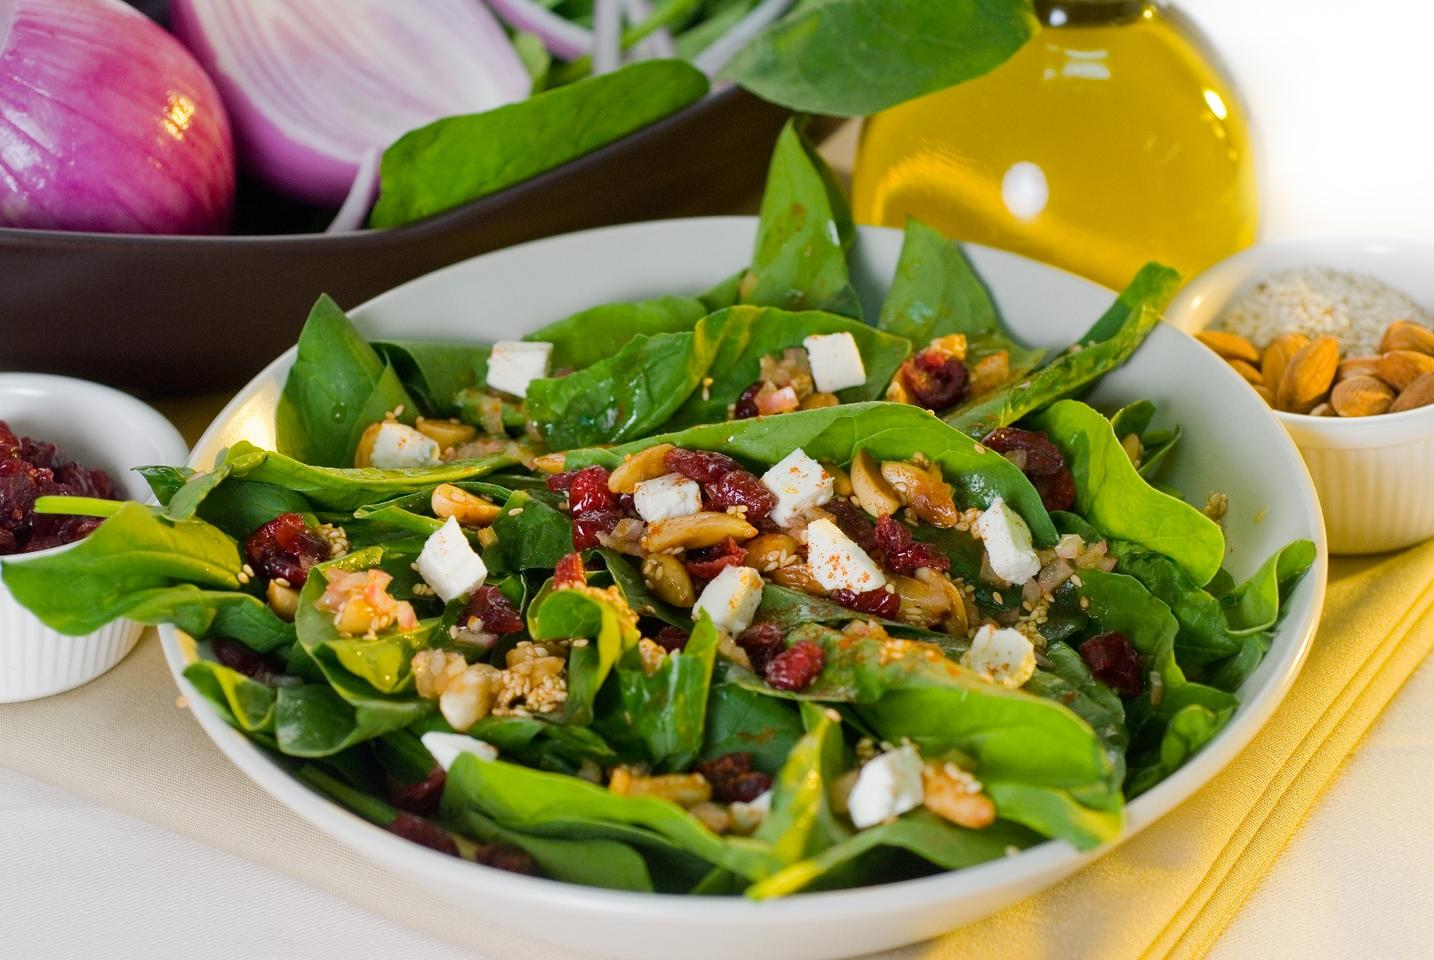 A daily salad might be a good idea for people wishing to stave off dementia